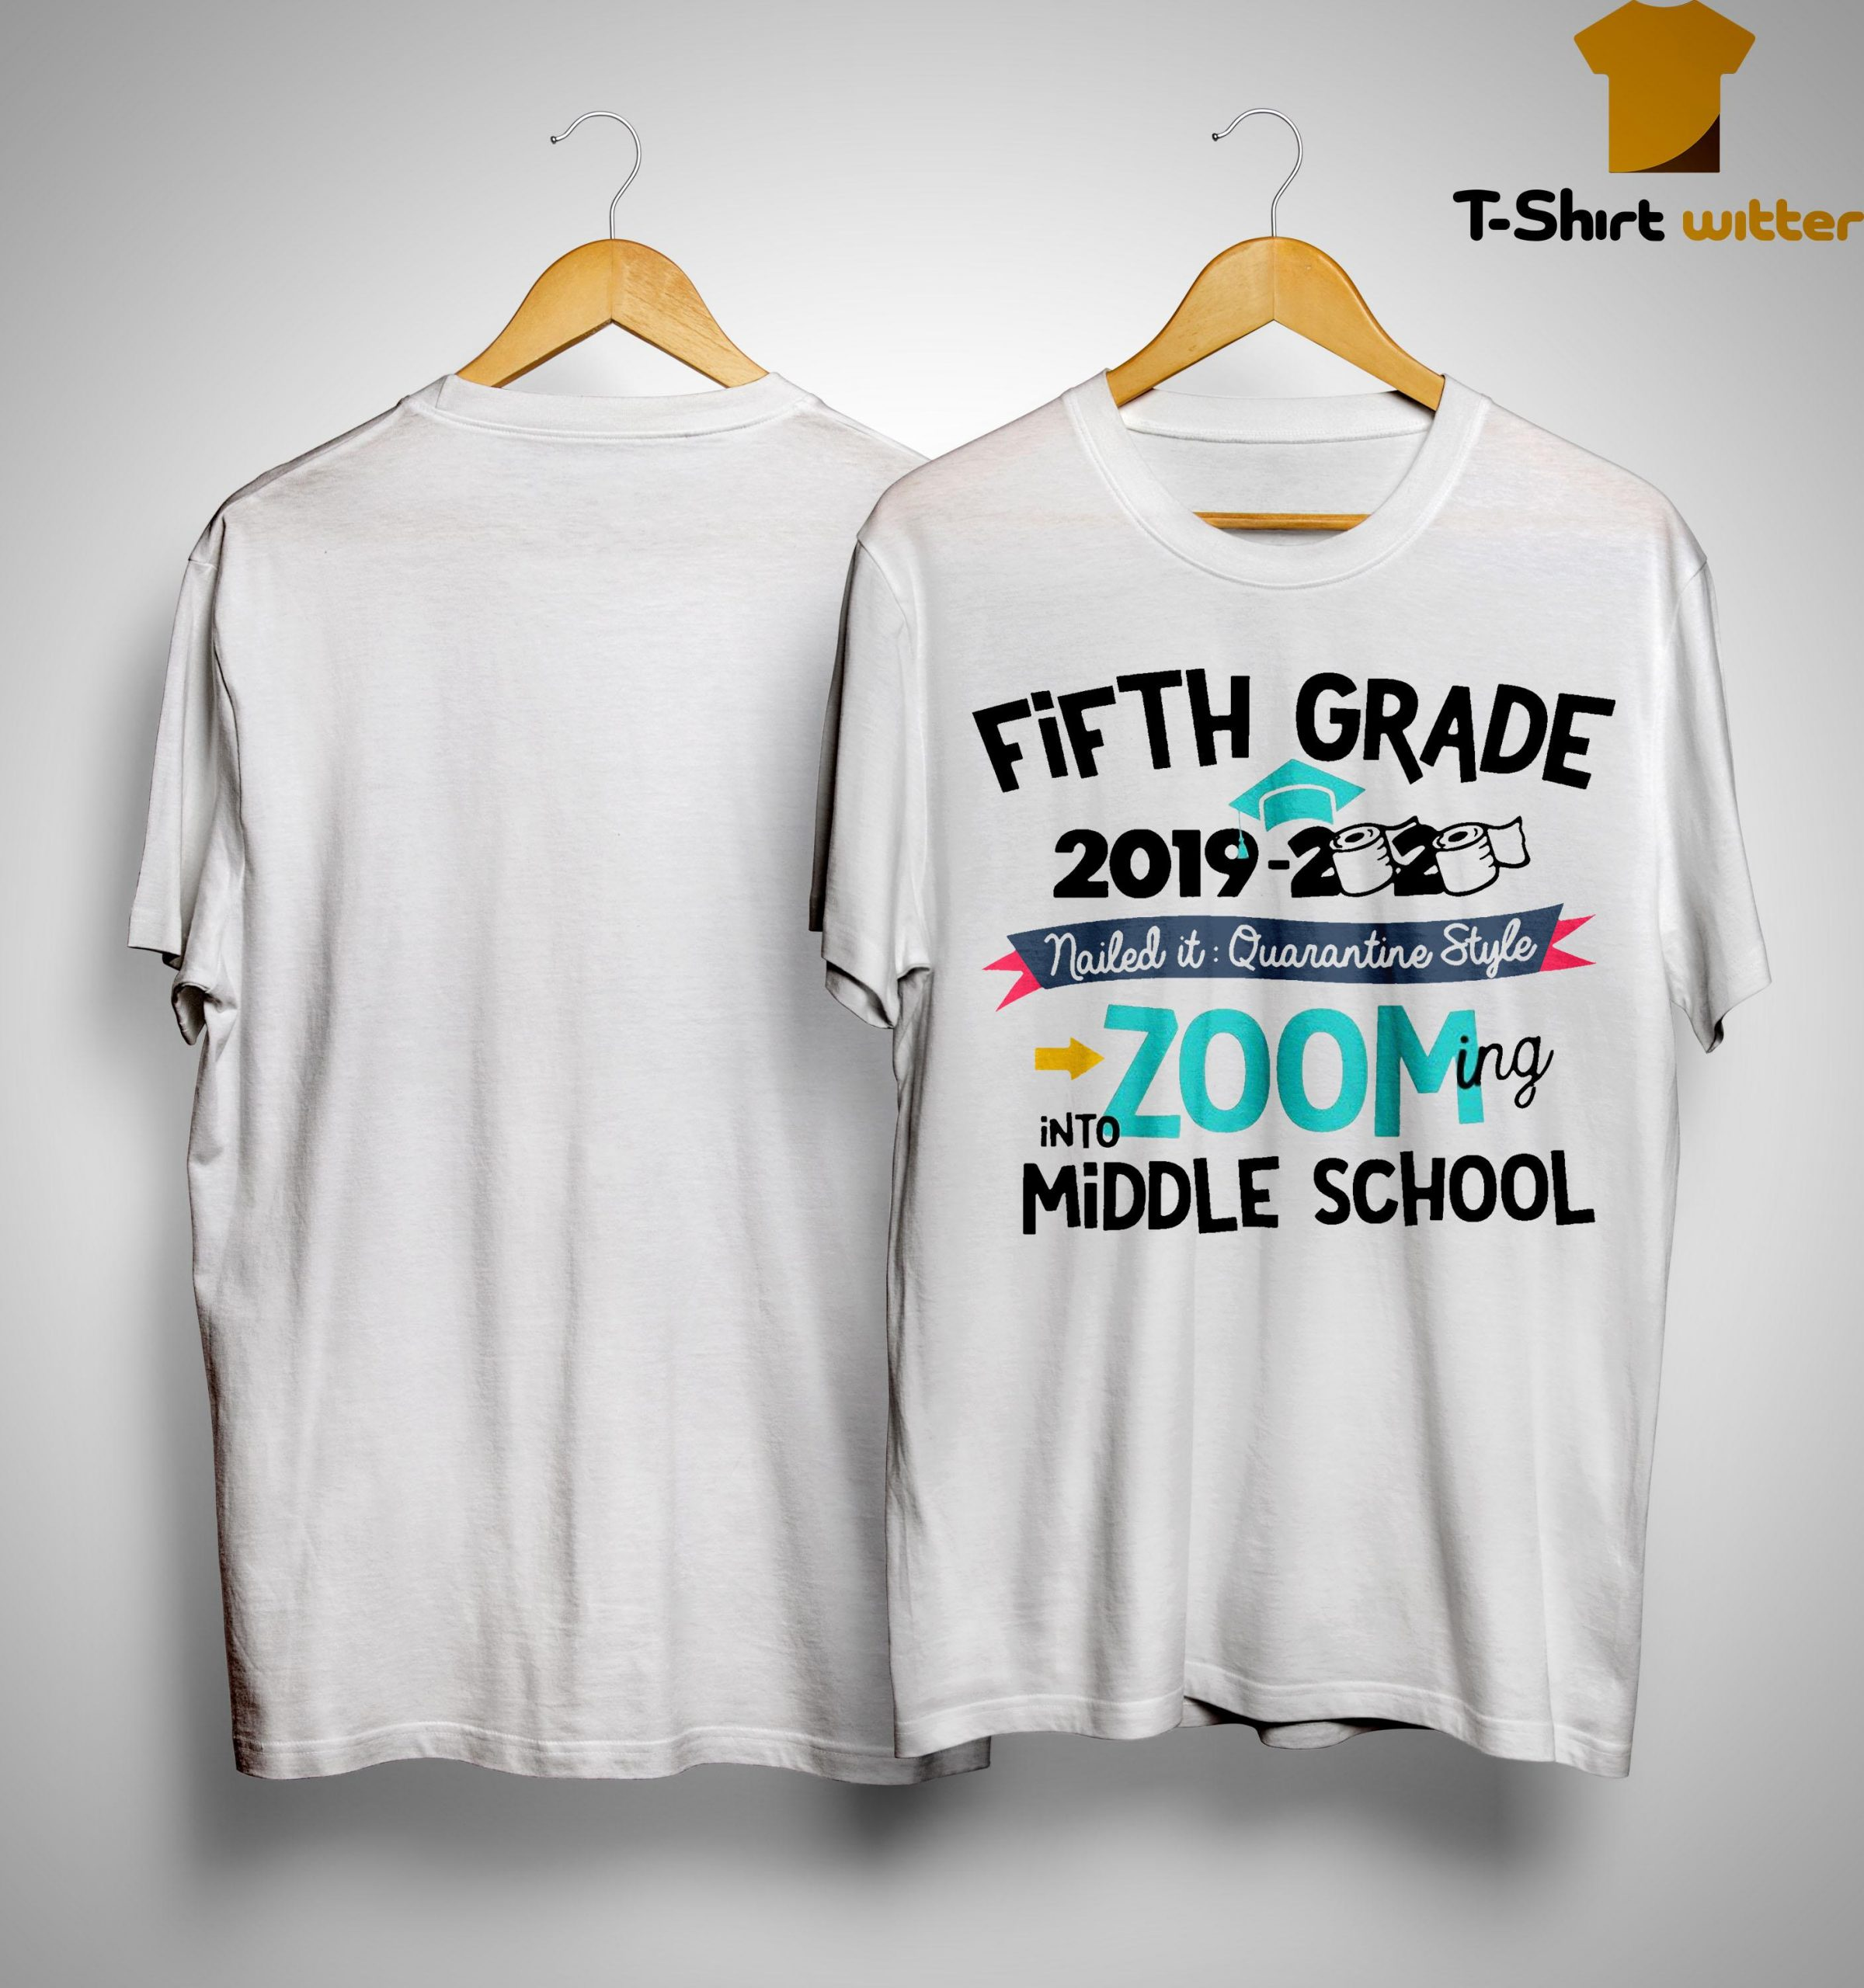 Fifth Grade 2019 2020 Nailed It Quarantine Style Zooming Into Middle School Shirt